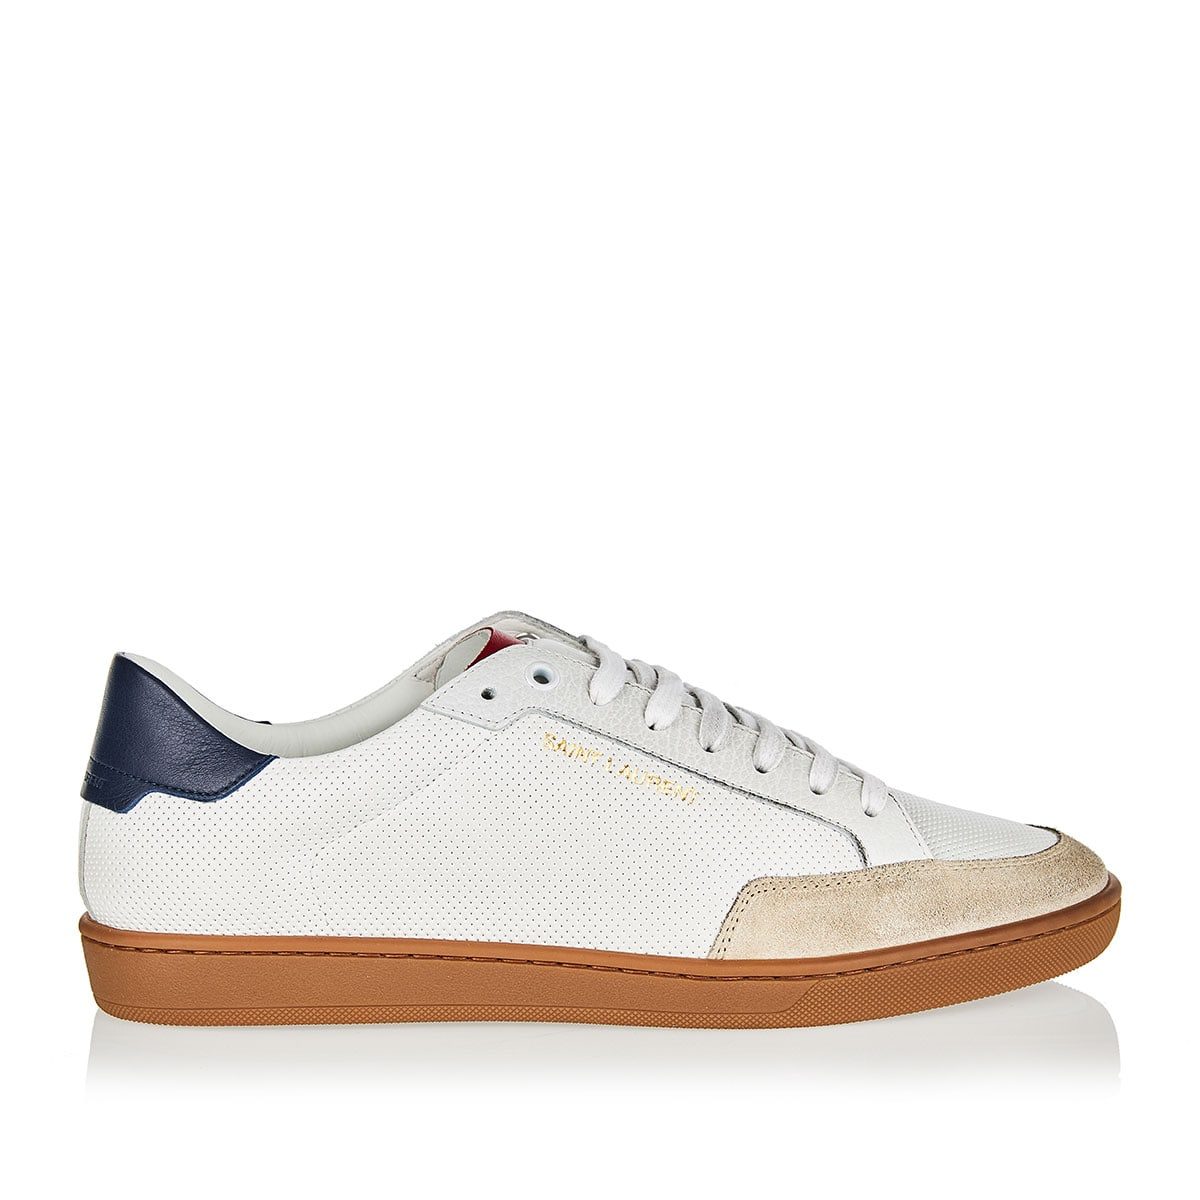 Court Classic SL/10 perforated leather sneakers